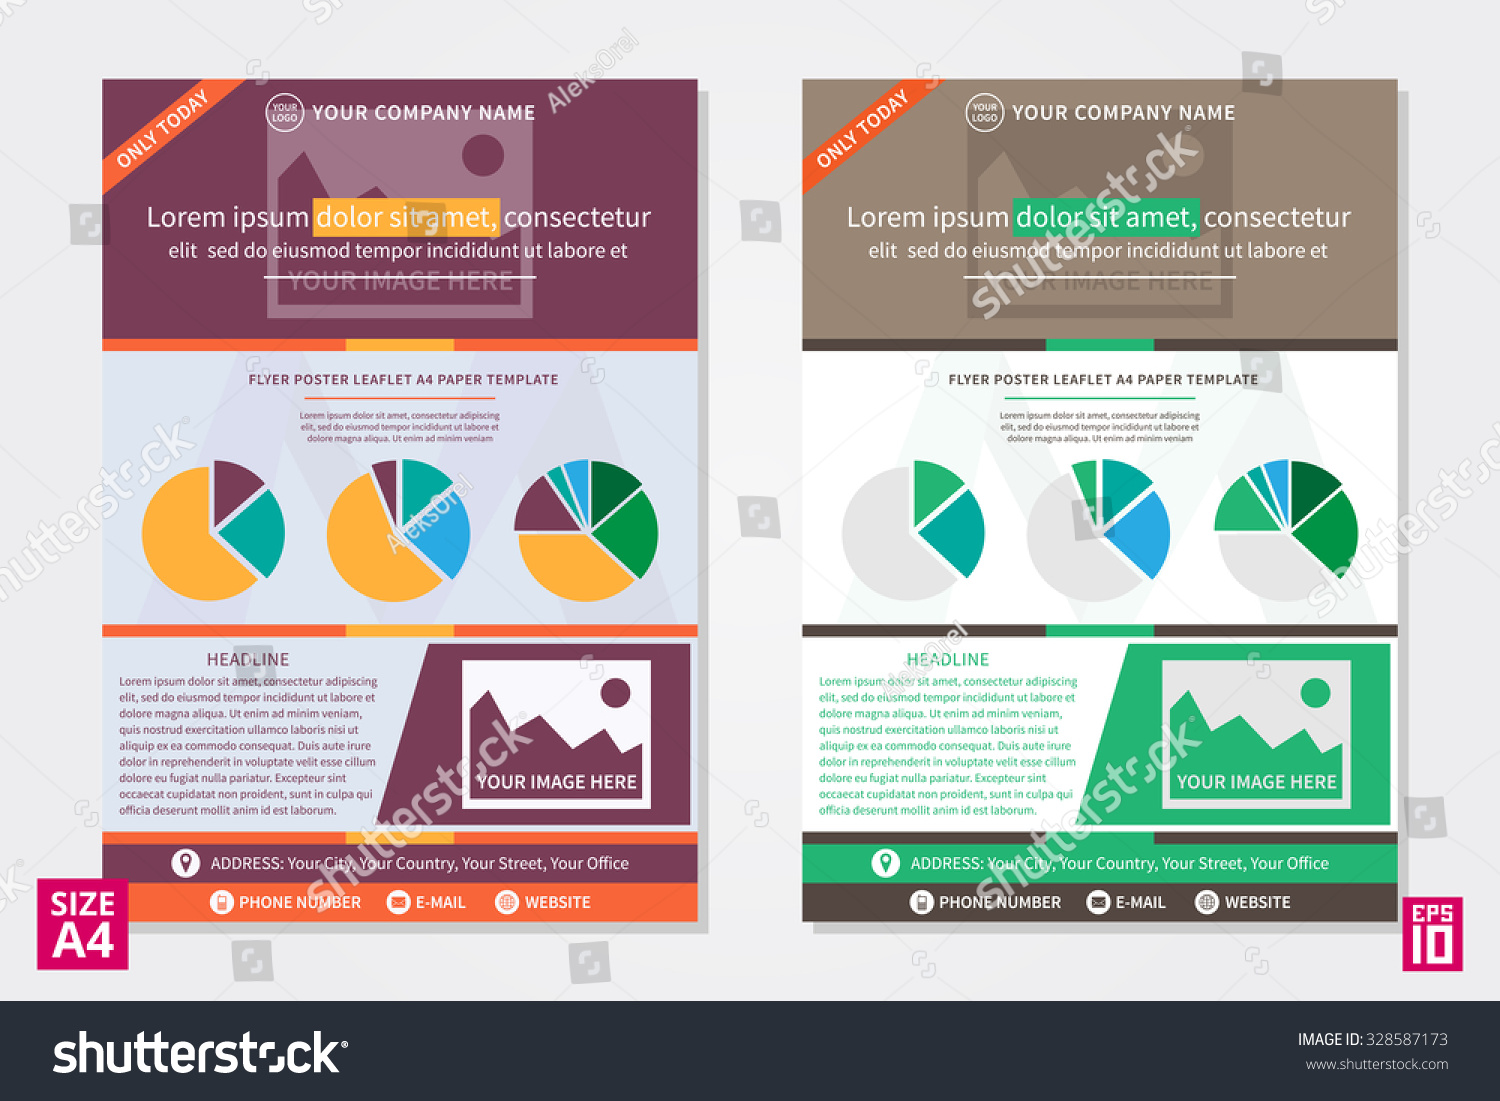 vector ad leaflet design concept creative stock vector  vector ad leaflet design concept creative colorful layout a4 page graph charts template